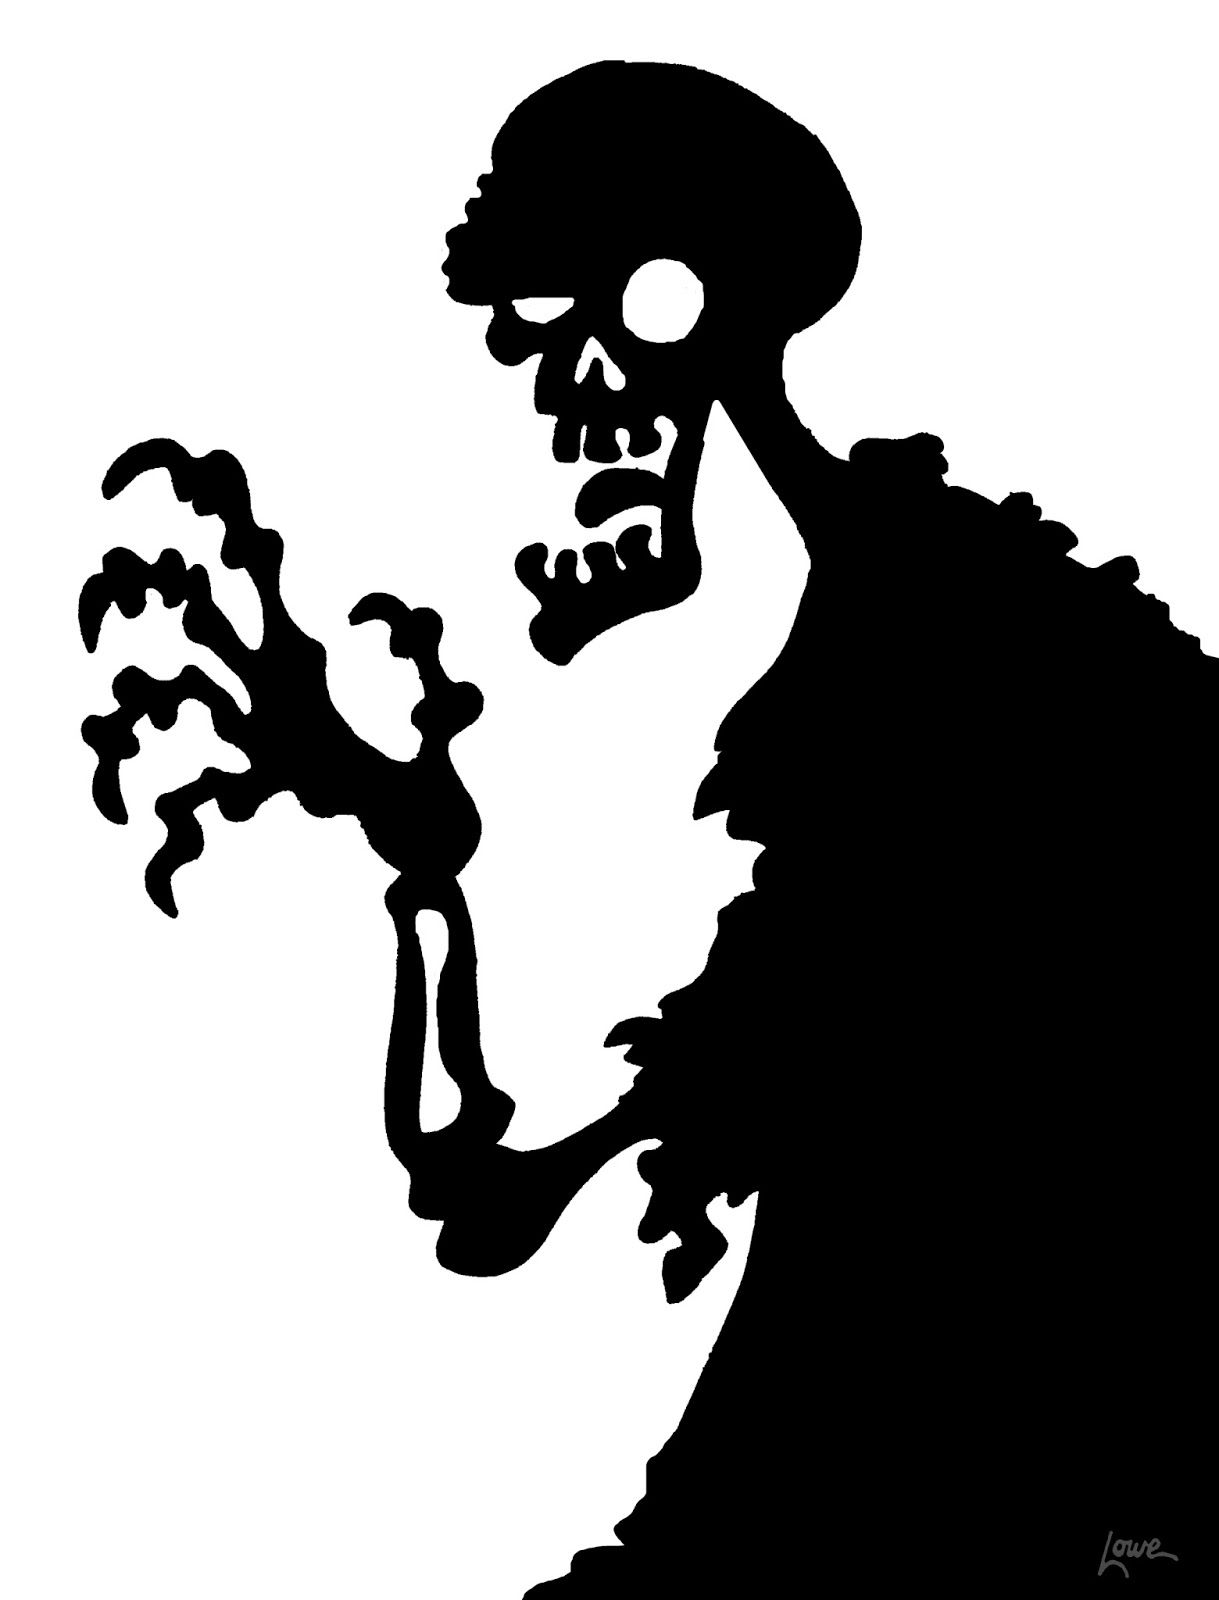 dave lowe design the blog 63 days til halloween zombie window silhouette printables - Halloween Design